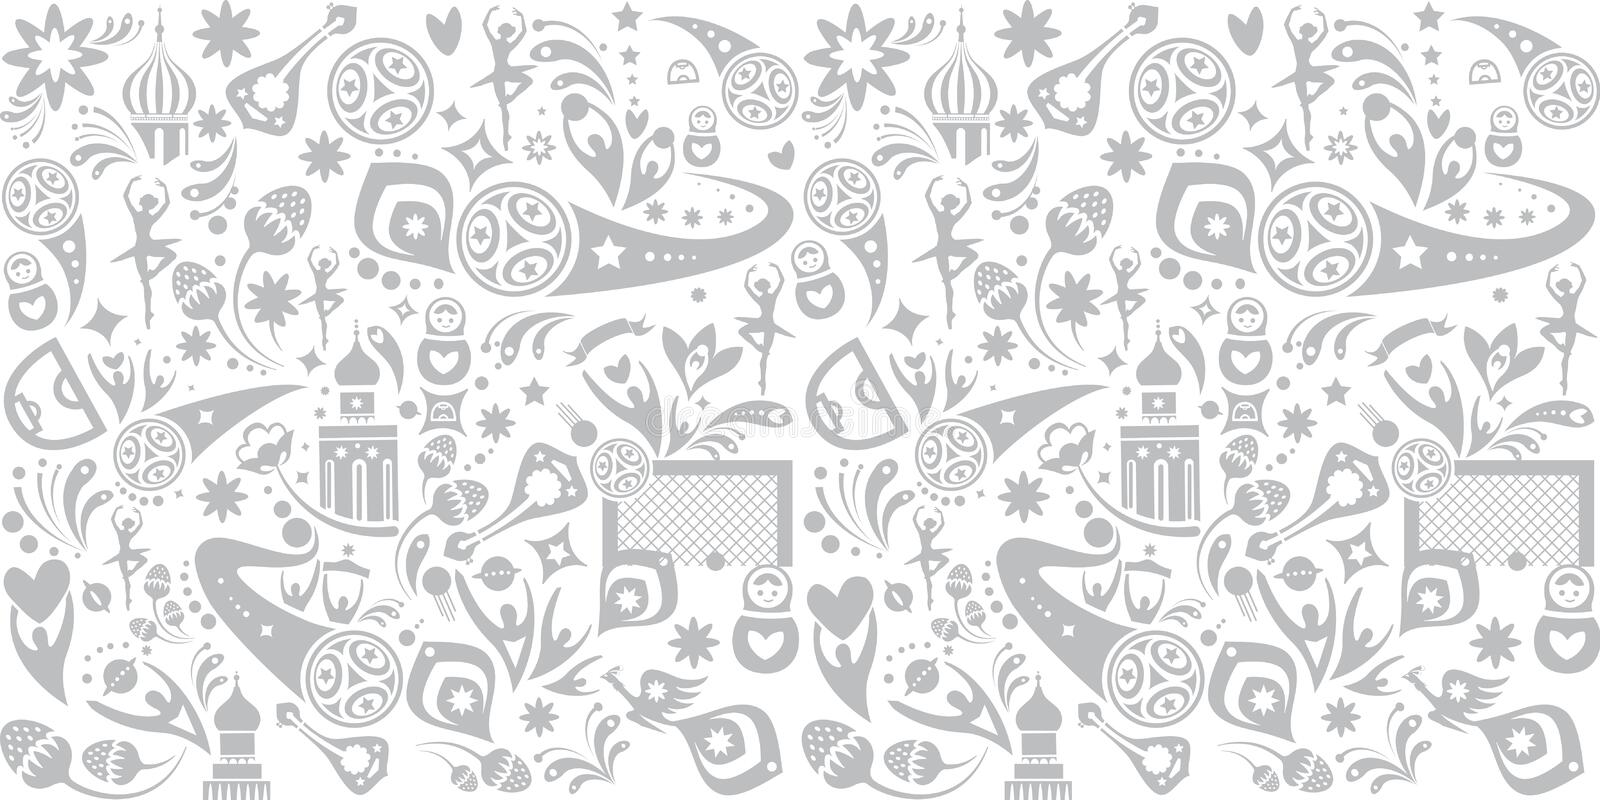 2018 Russia World Cup soccer seamless pattern print. Football 2018 Russia World Cup Abstract football tournament background, seamless pattern, dynamic texture royalty free illustration